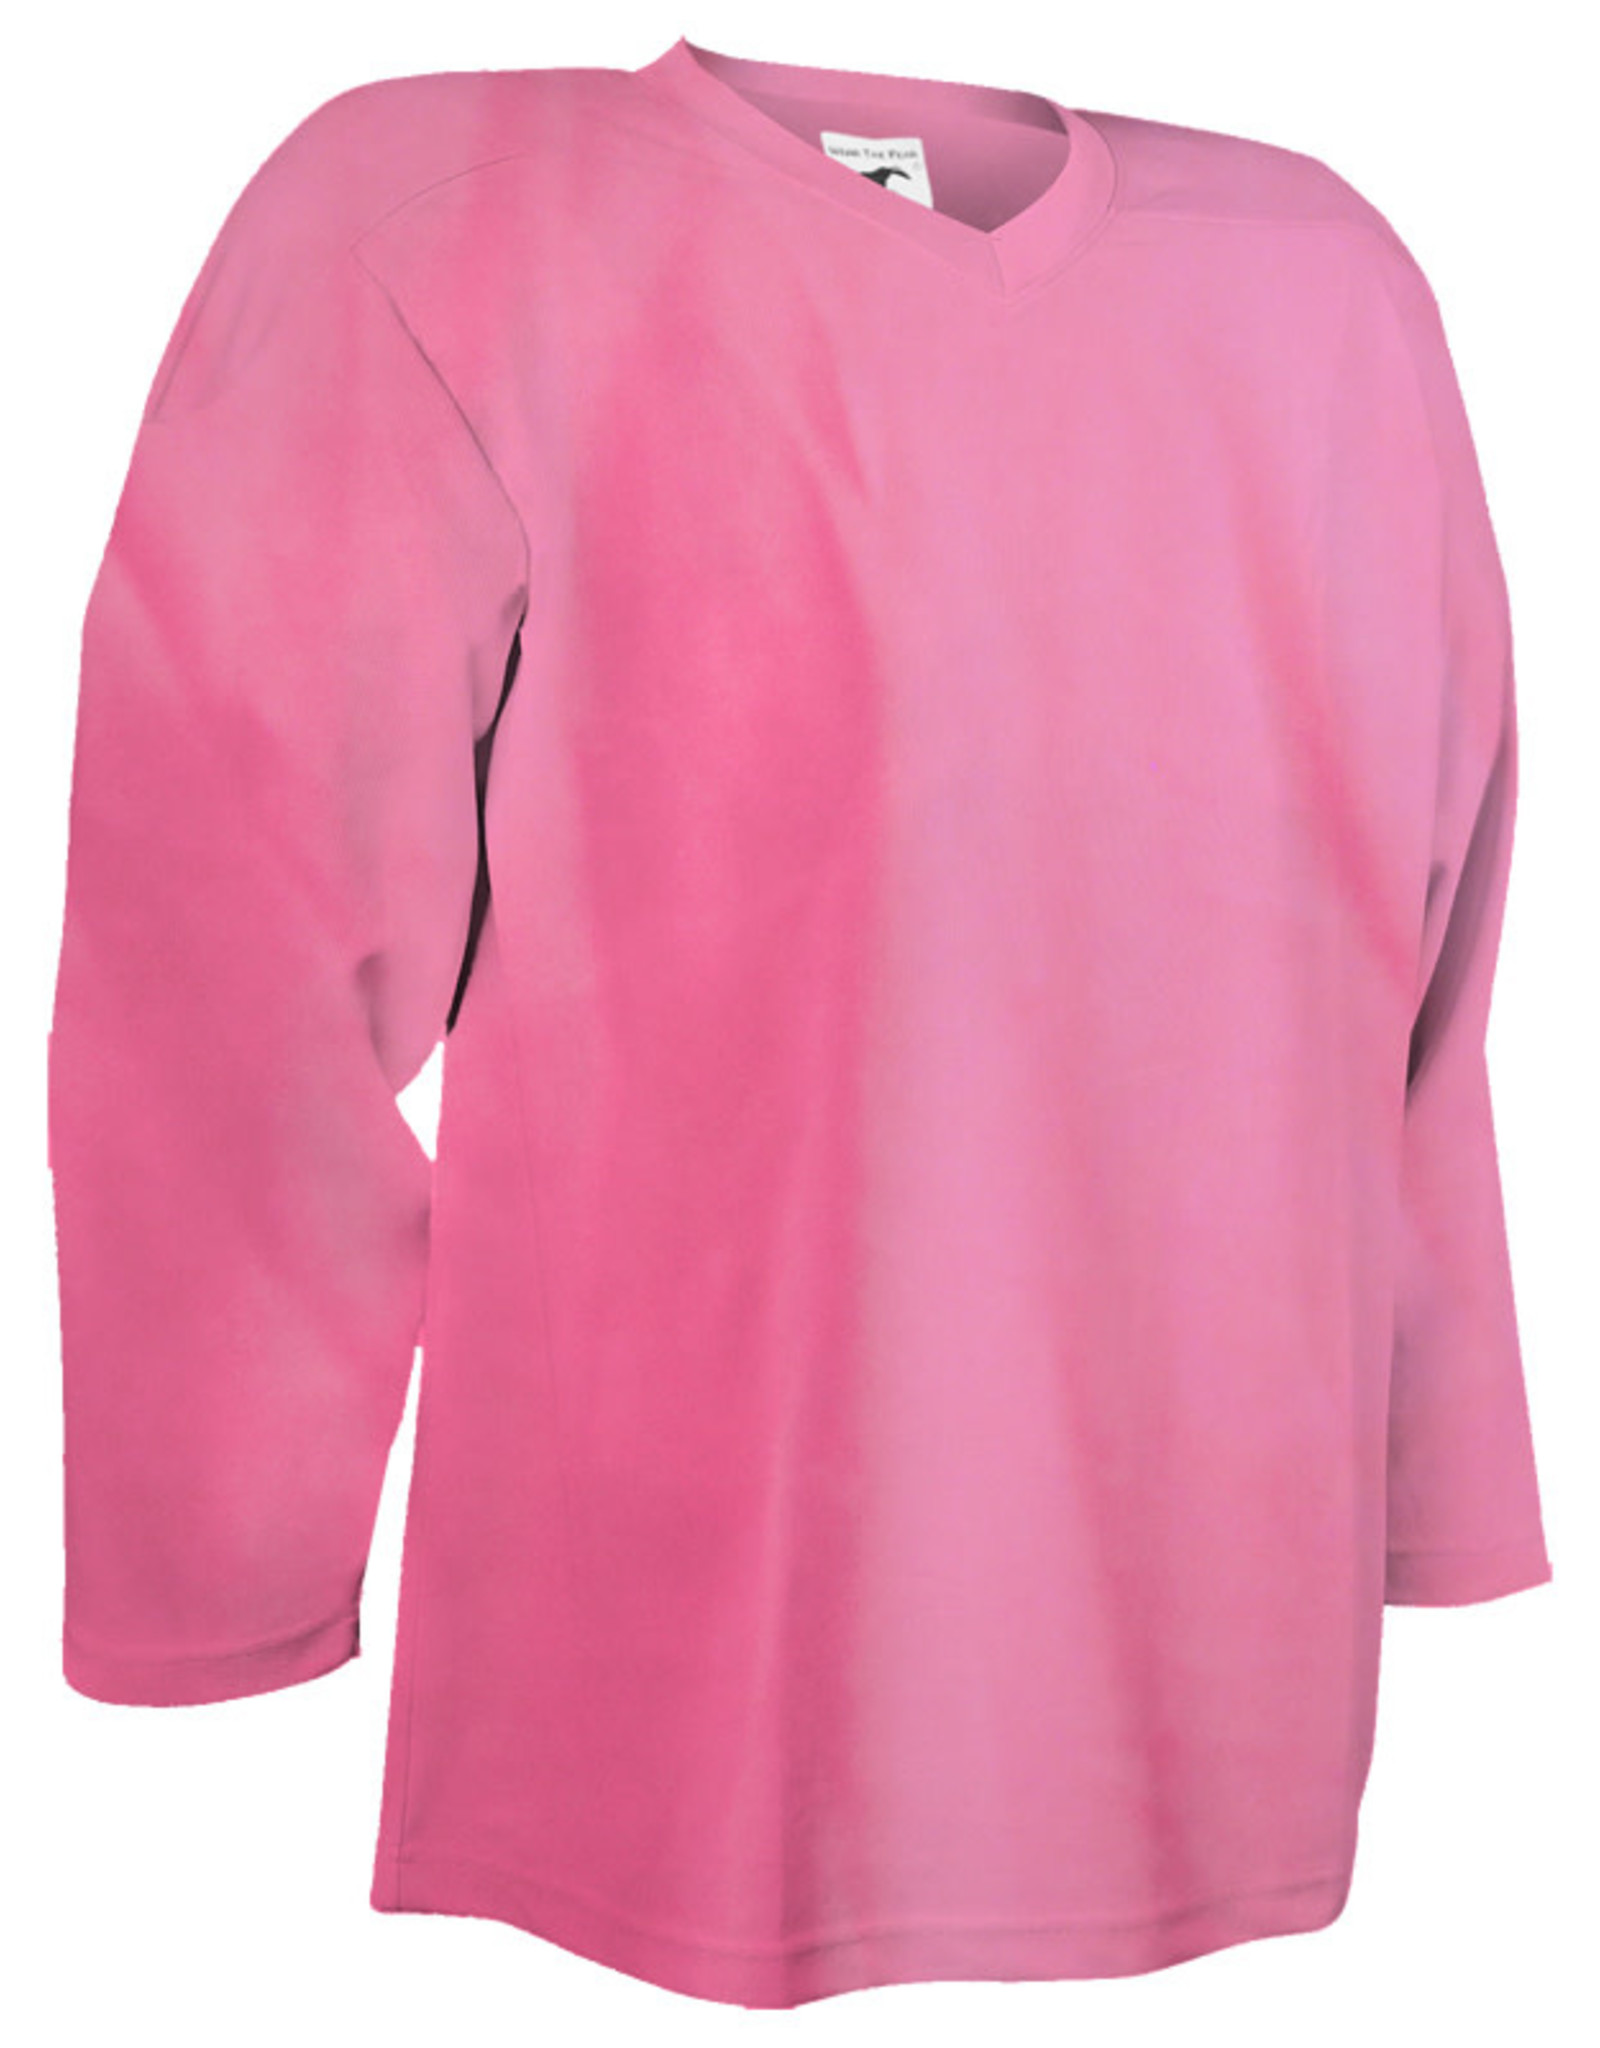 Pear Sox Pear Sox Air Mesh Practice Jersey (ADULT PINK)